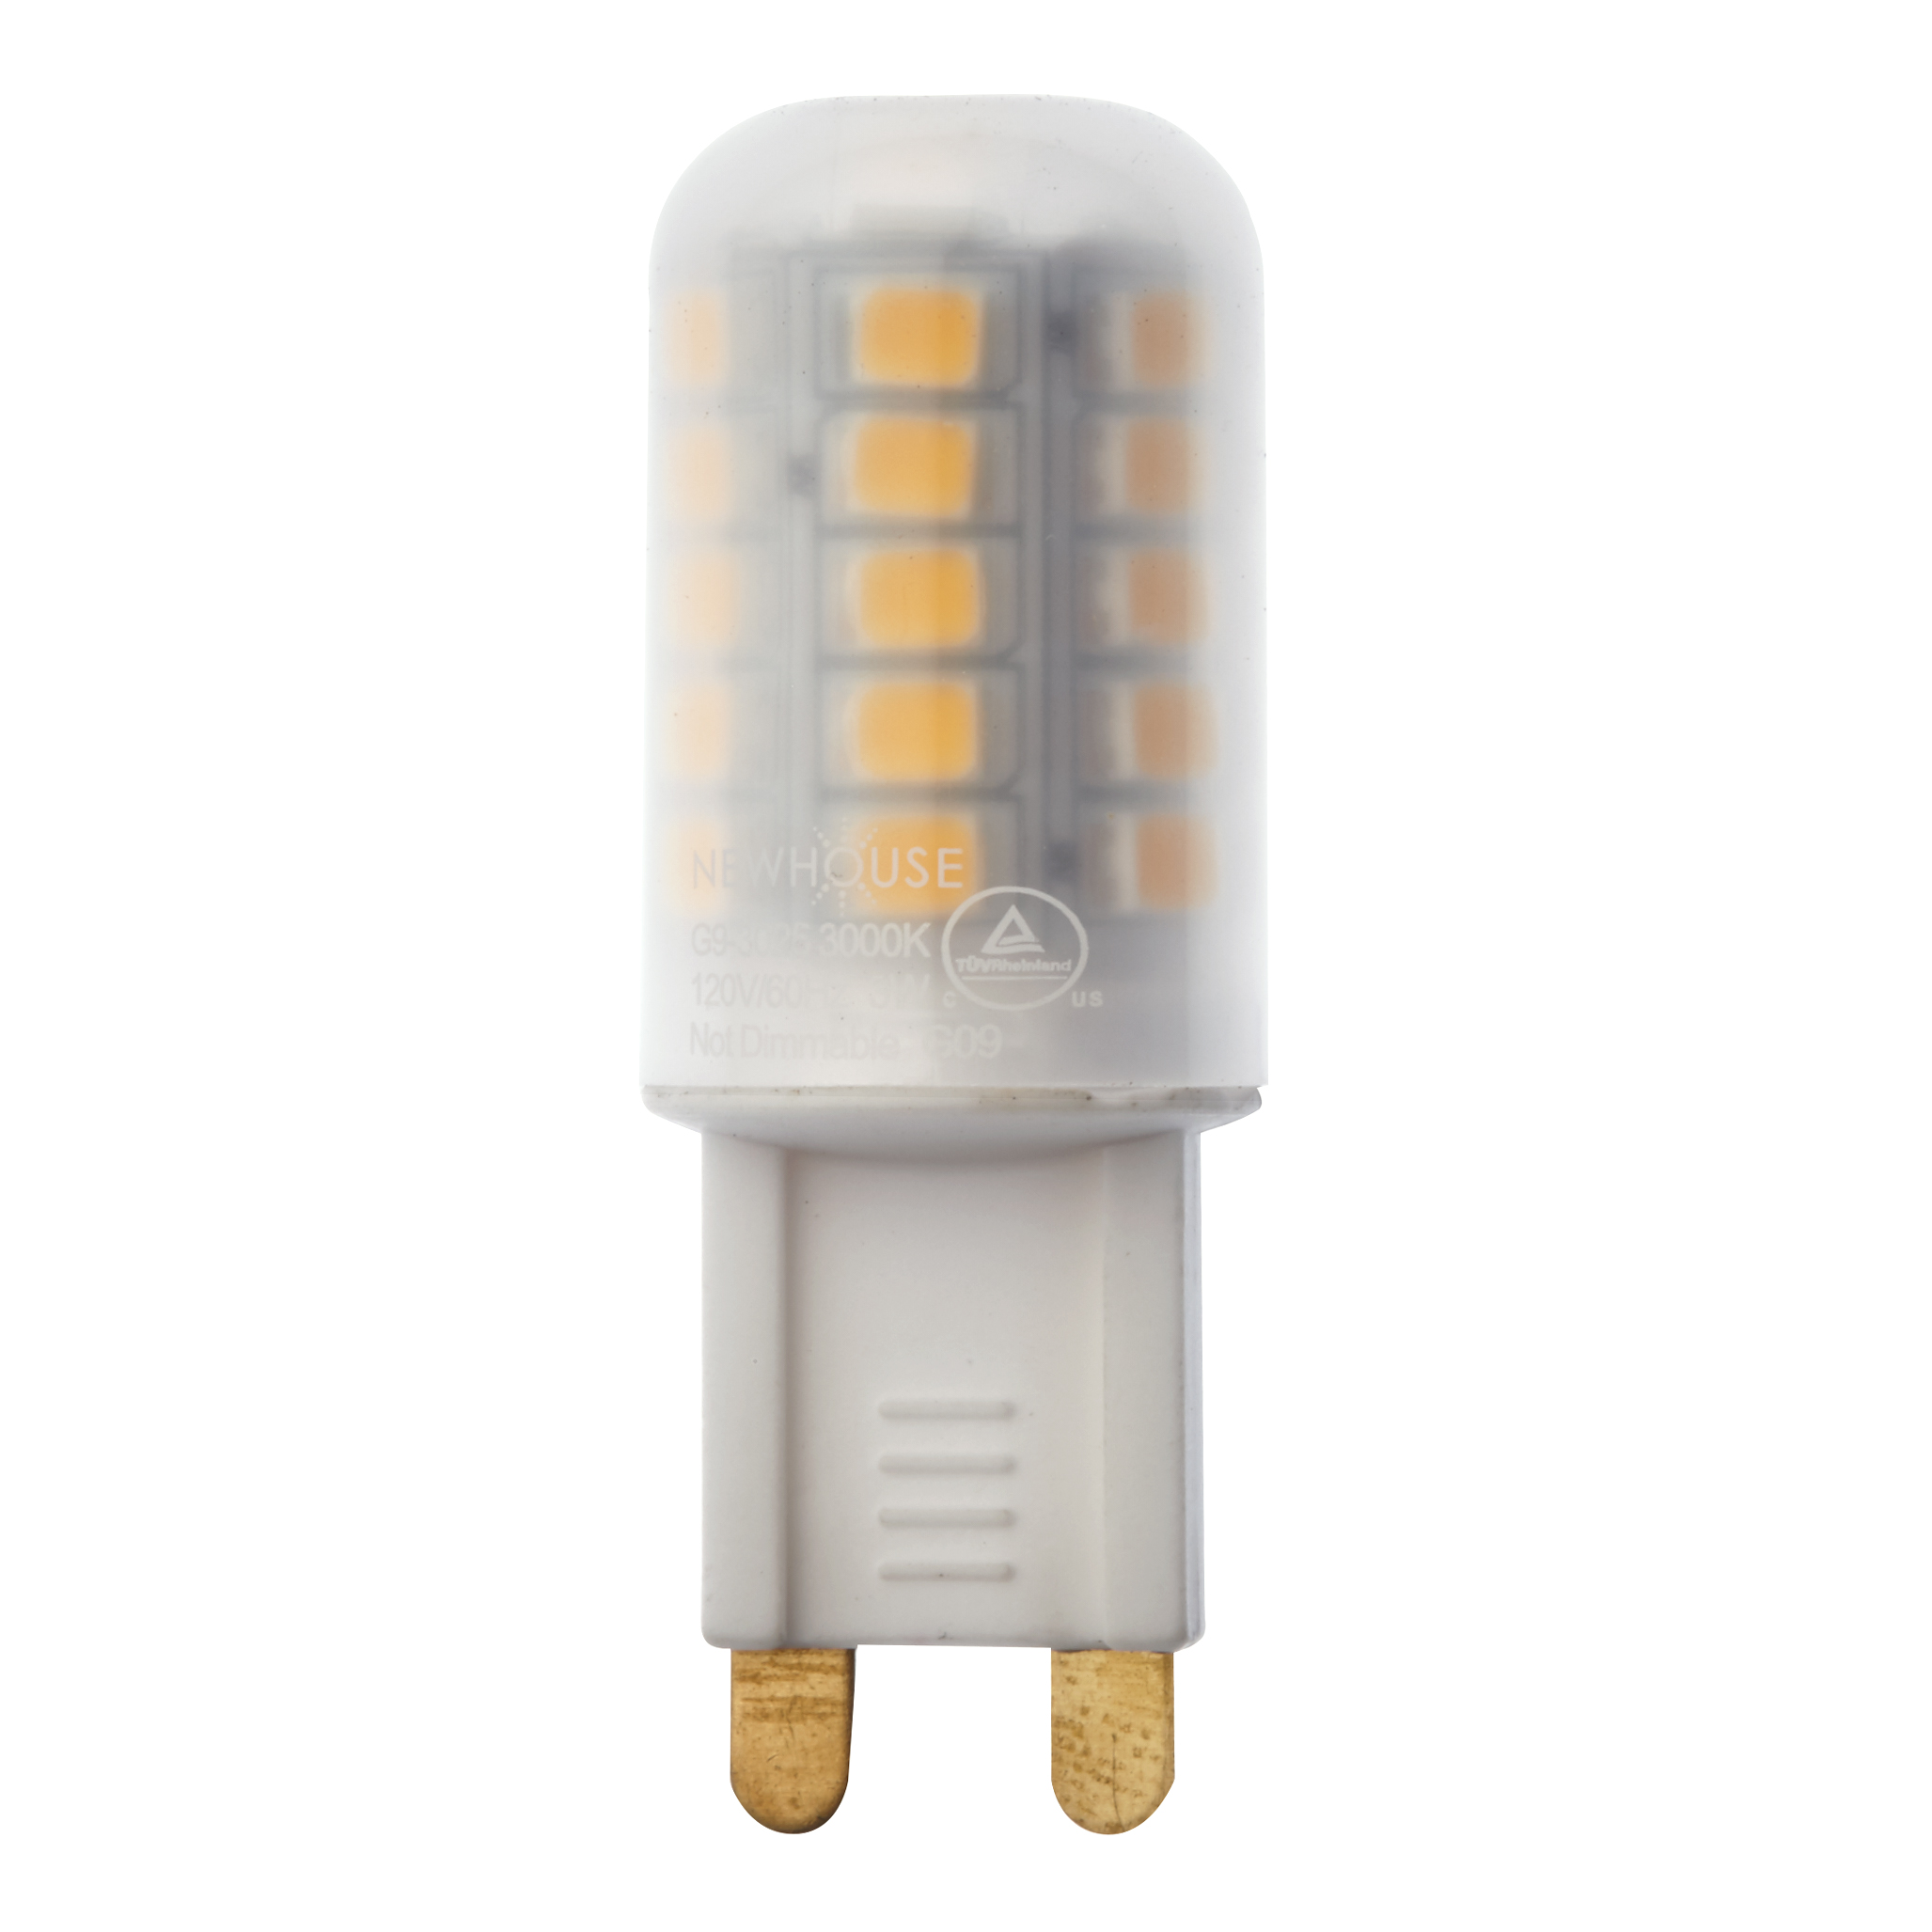 Led Halogen 3w 25w Equivalent G9 3025 G9 Led Bulb Newhouse Lighting